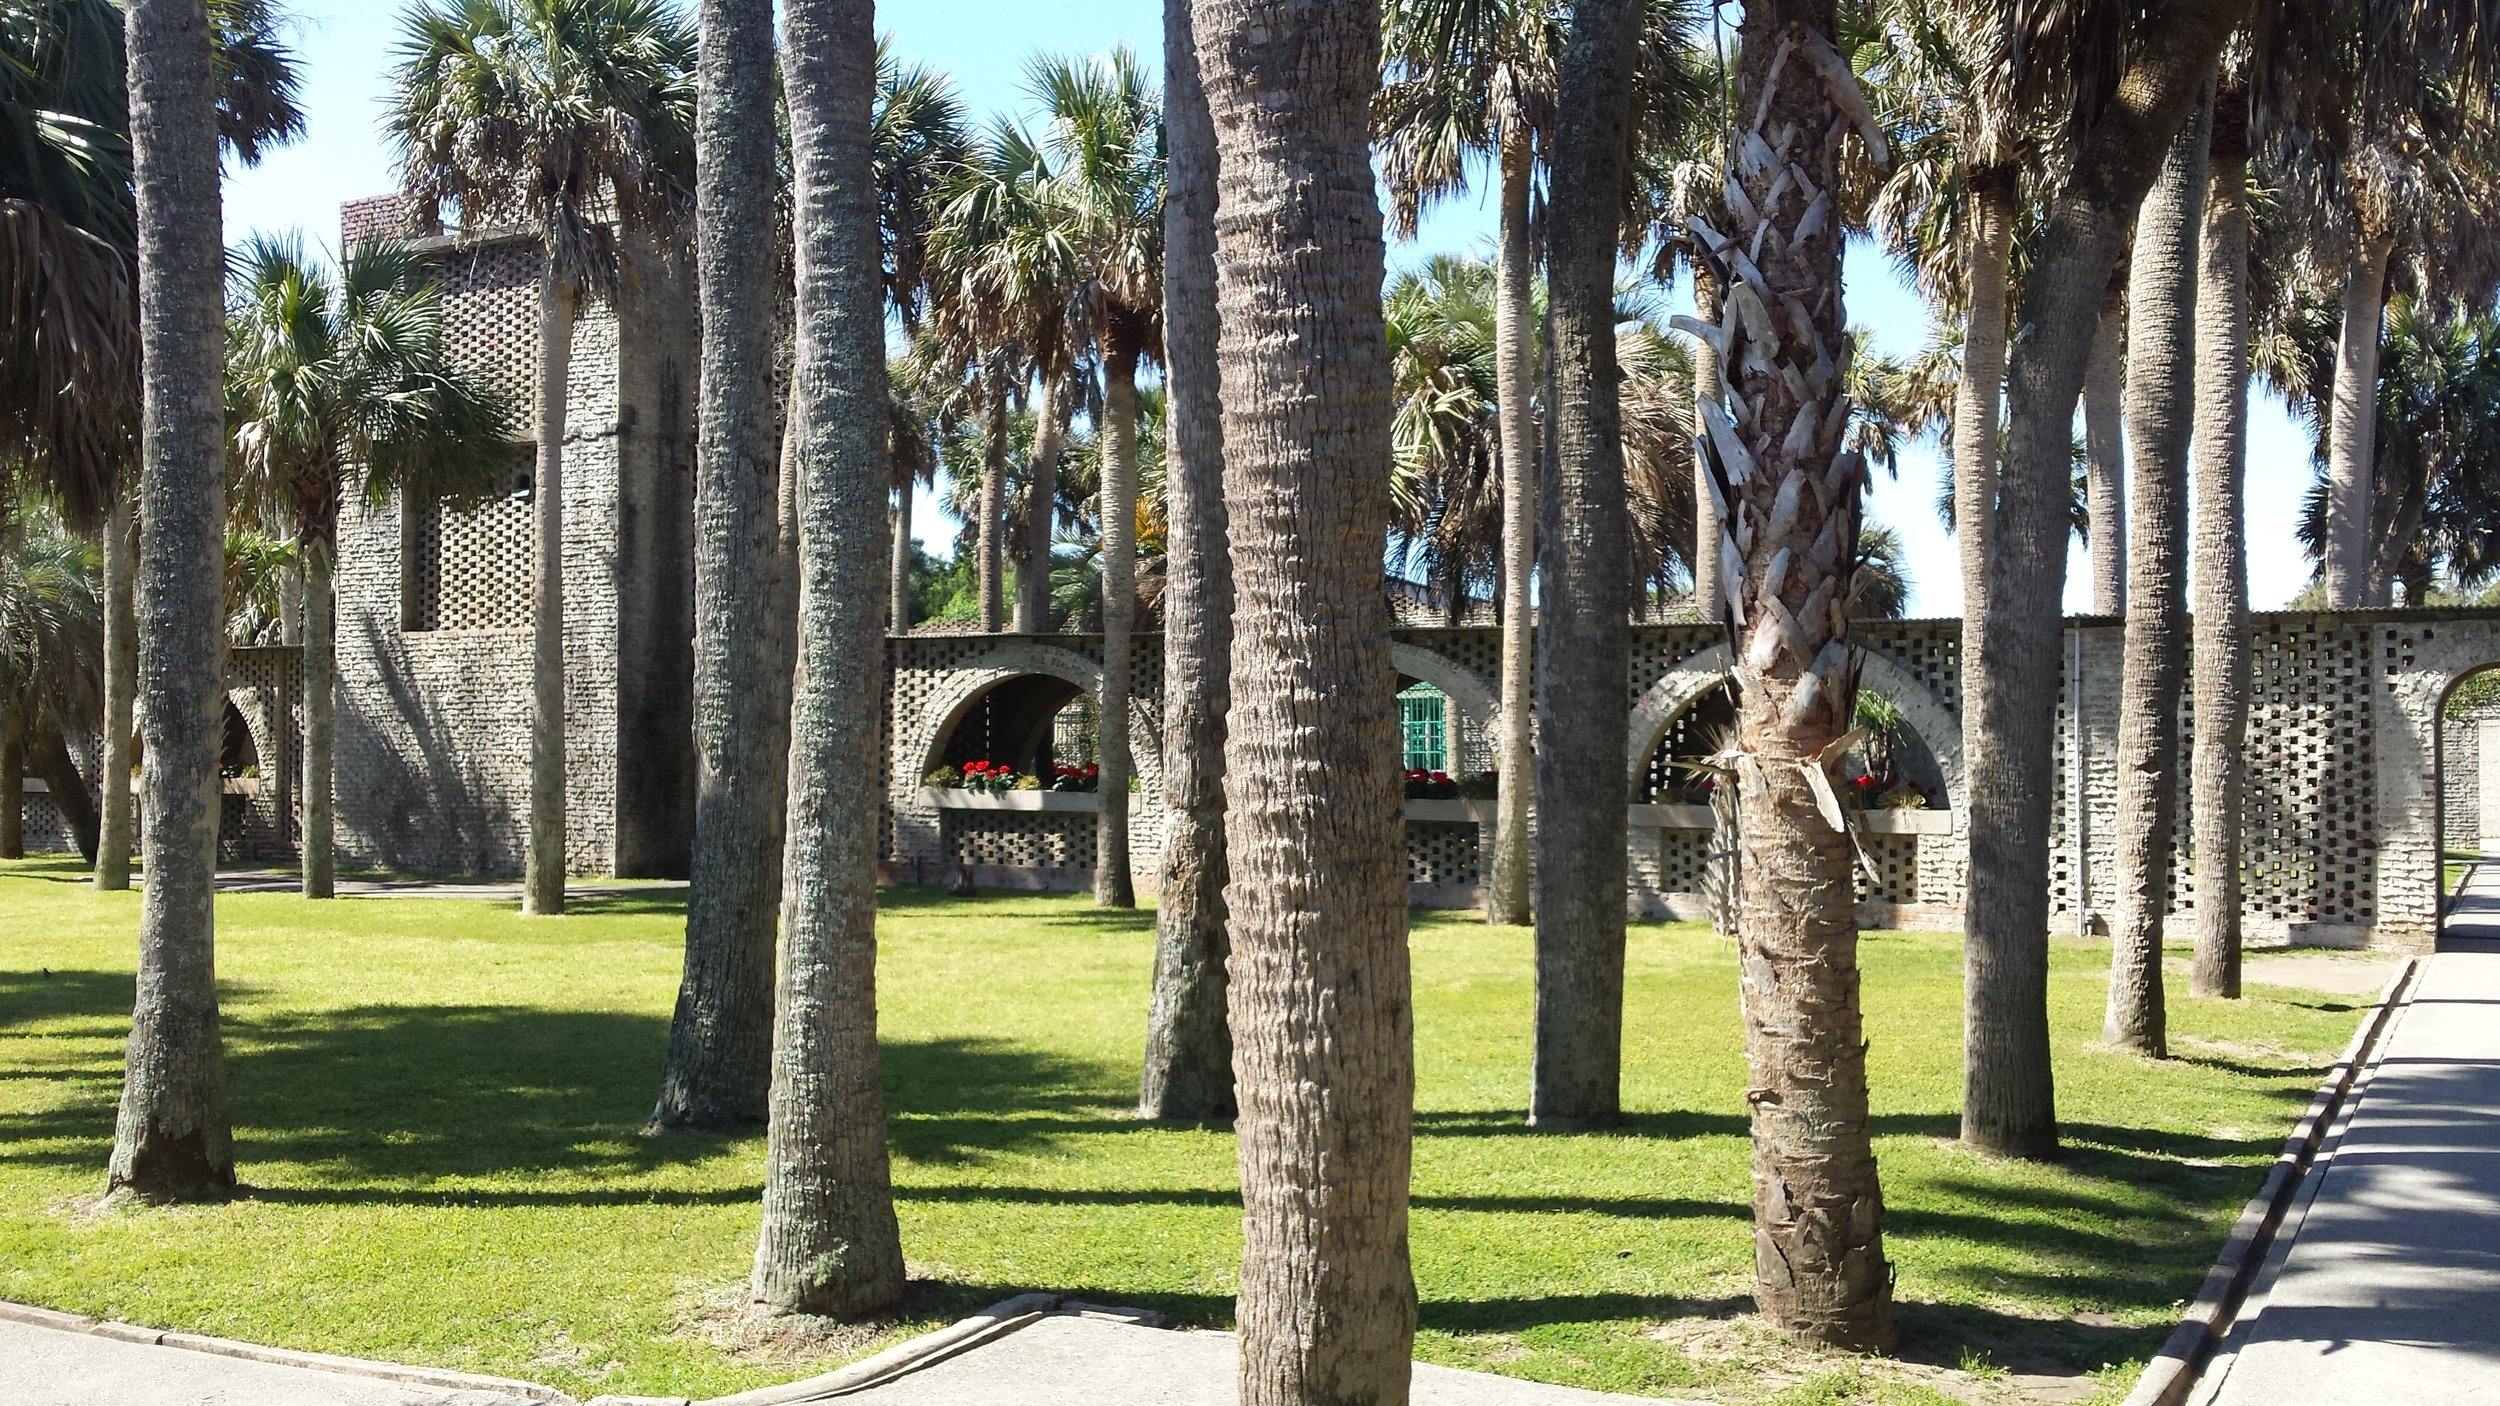 The courtyard filled with palms and the water tower